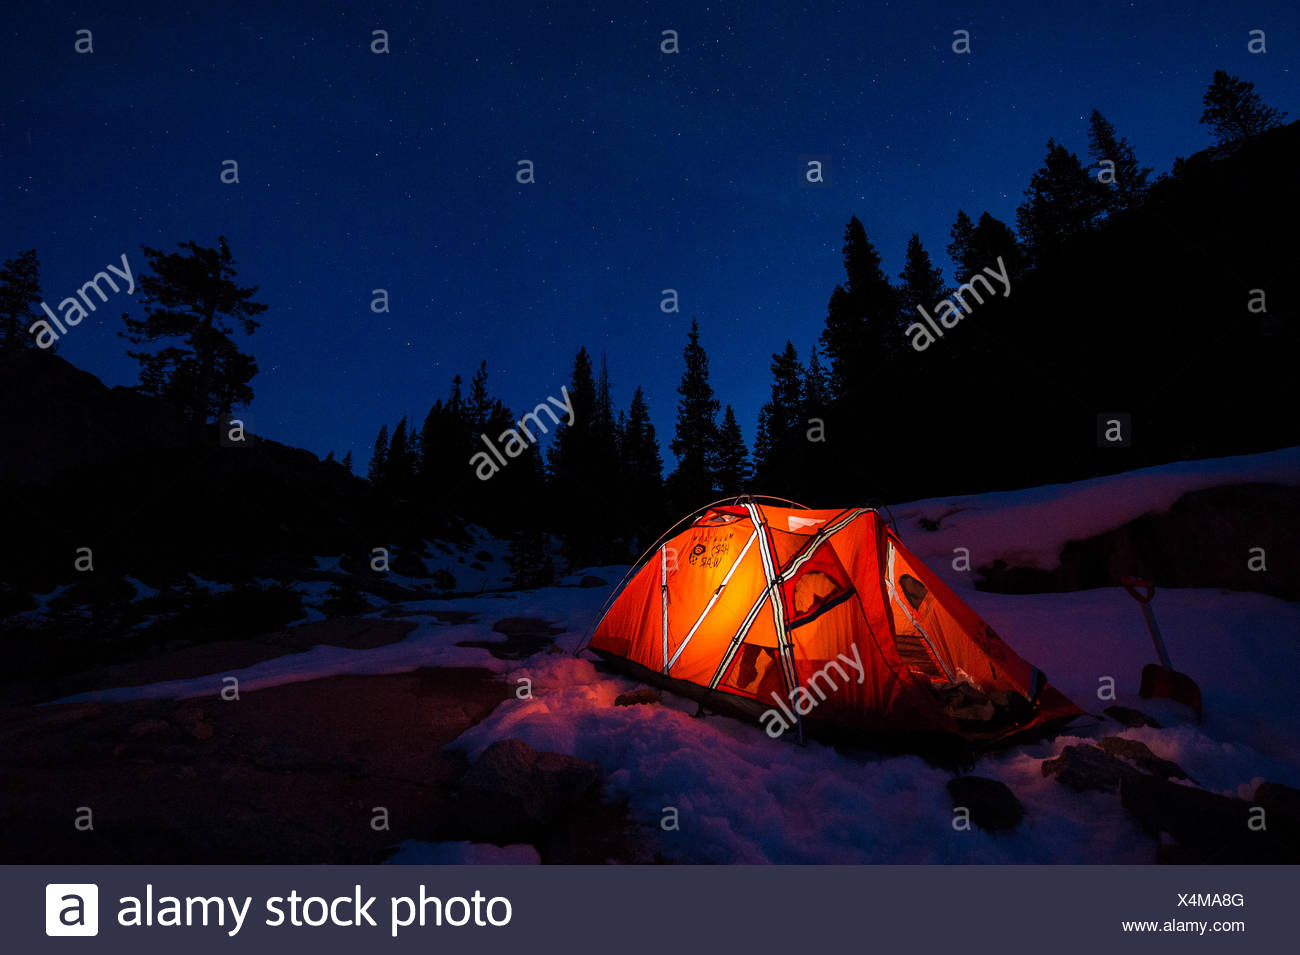 Camping on Donner Summit - Stock Image